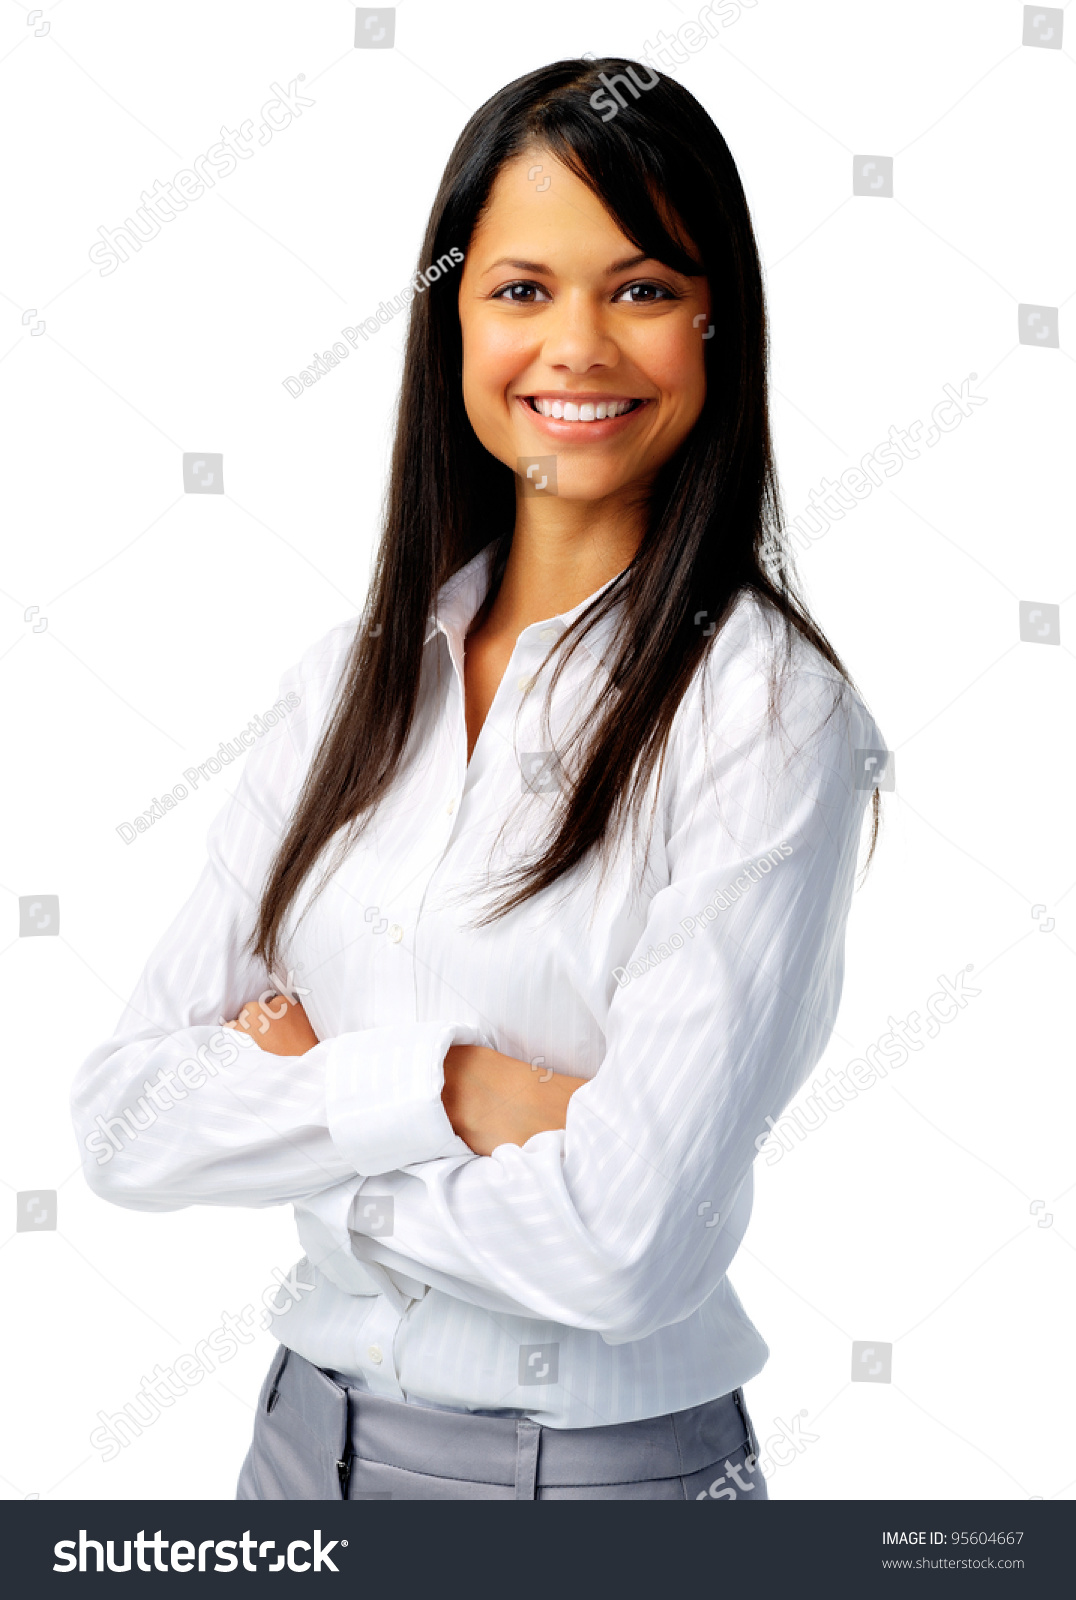 whiting hispanic single women Many sites come and go, but here are five that have been around for a while and  that have different offerings depending on what you are.